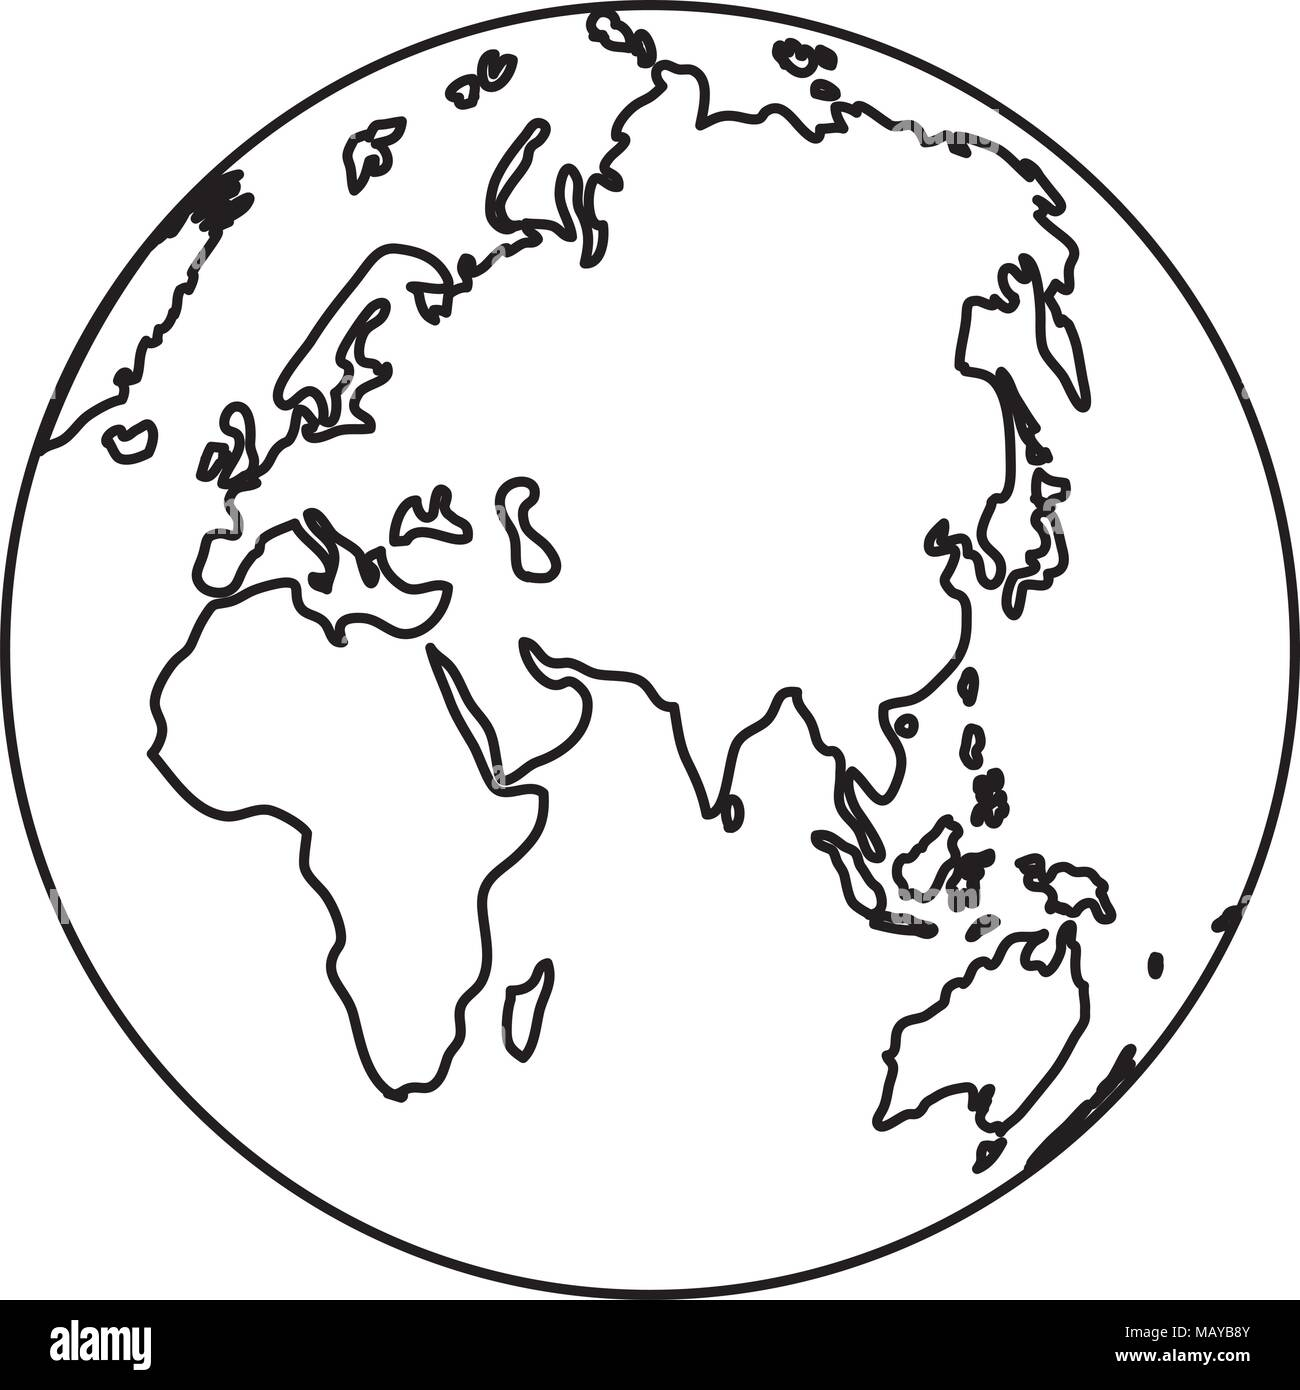 Map Of Asia Black And White.Map Asia Black And White Stock Photos Images Alamy